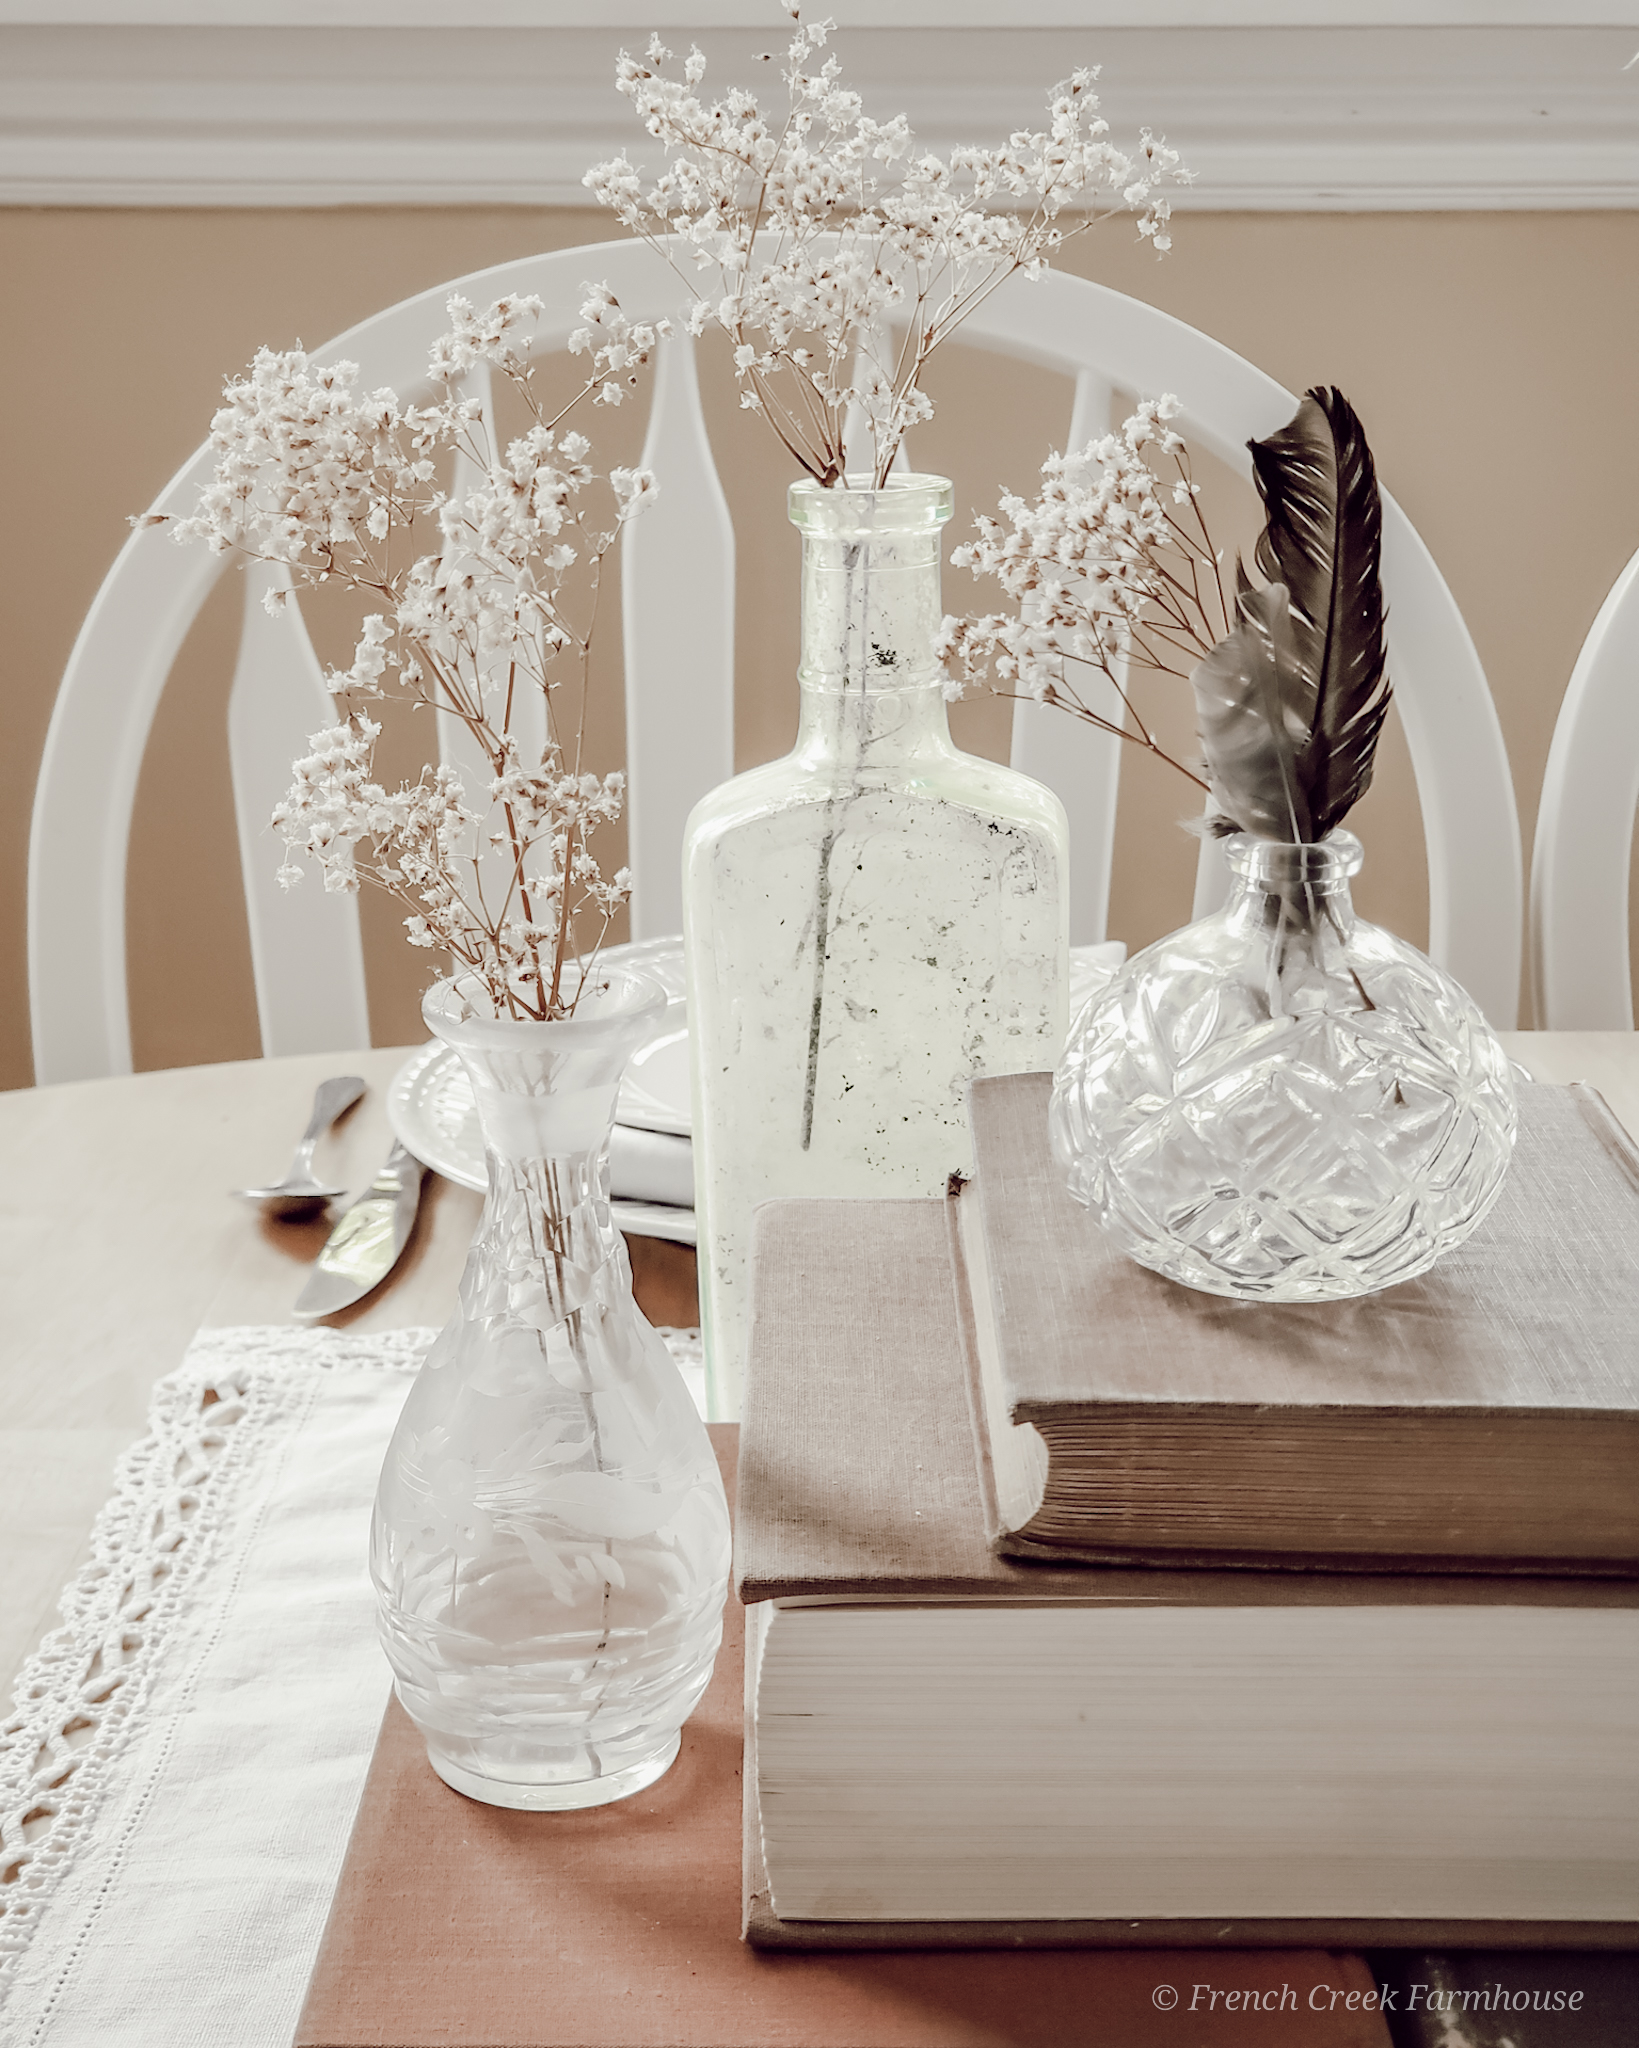 Small vintage glass bottles and vases filled with baby's breath